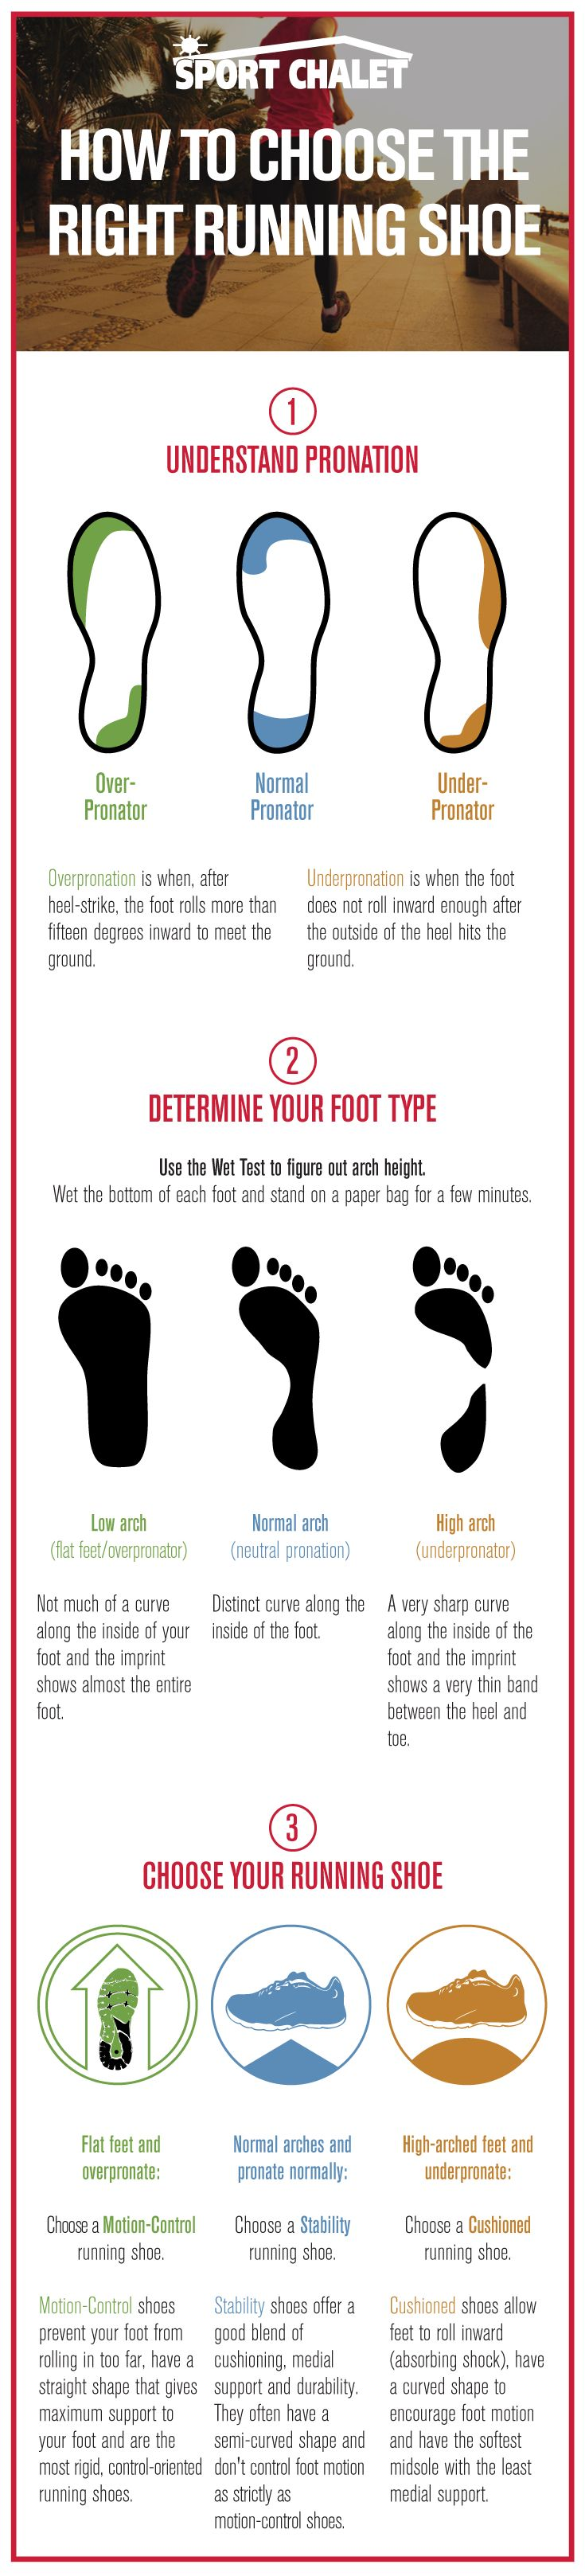 How to Choose the Right Running Shoe Infographic